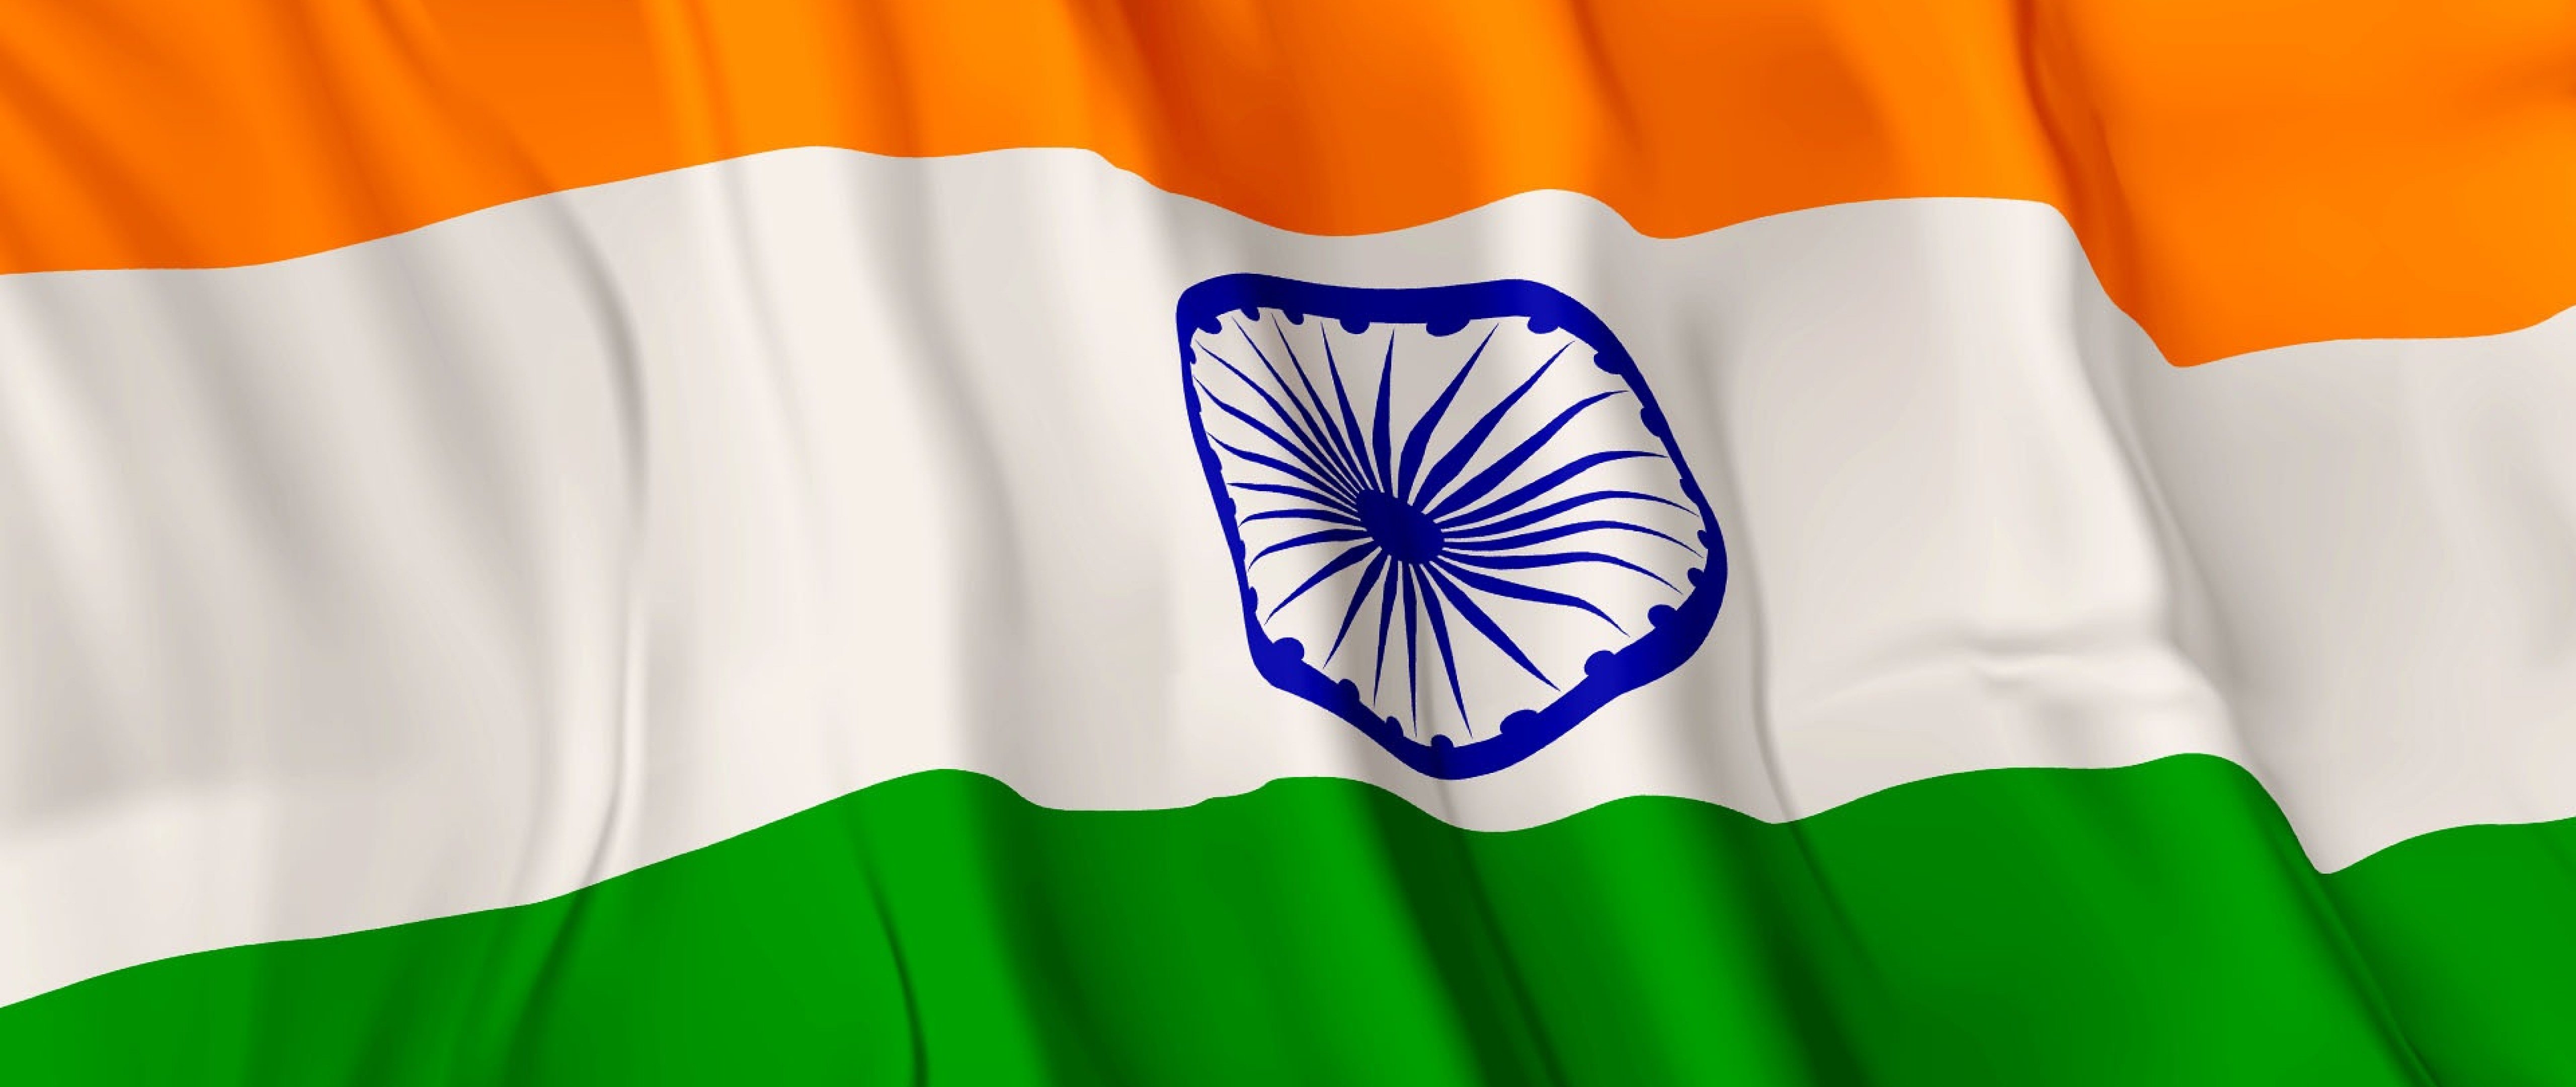 Free Download Indian Flag Wallpaper For Desktop And Mobiles